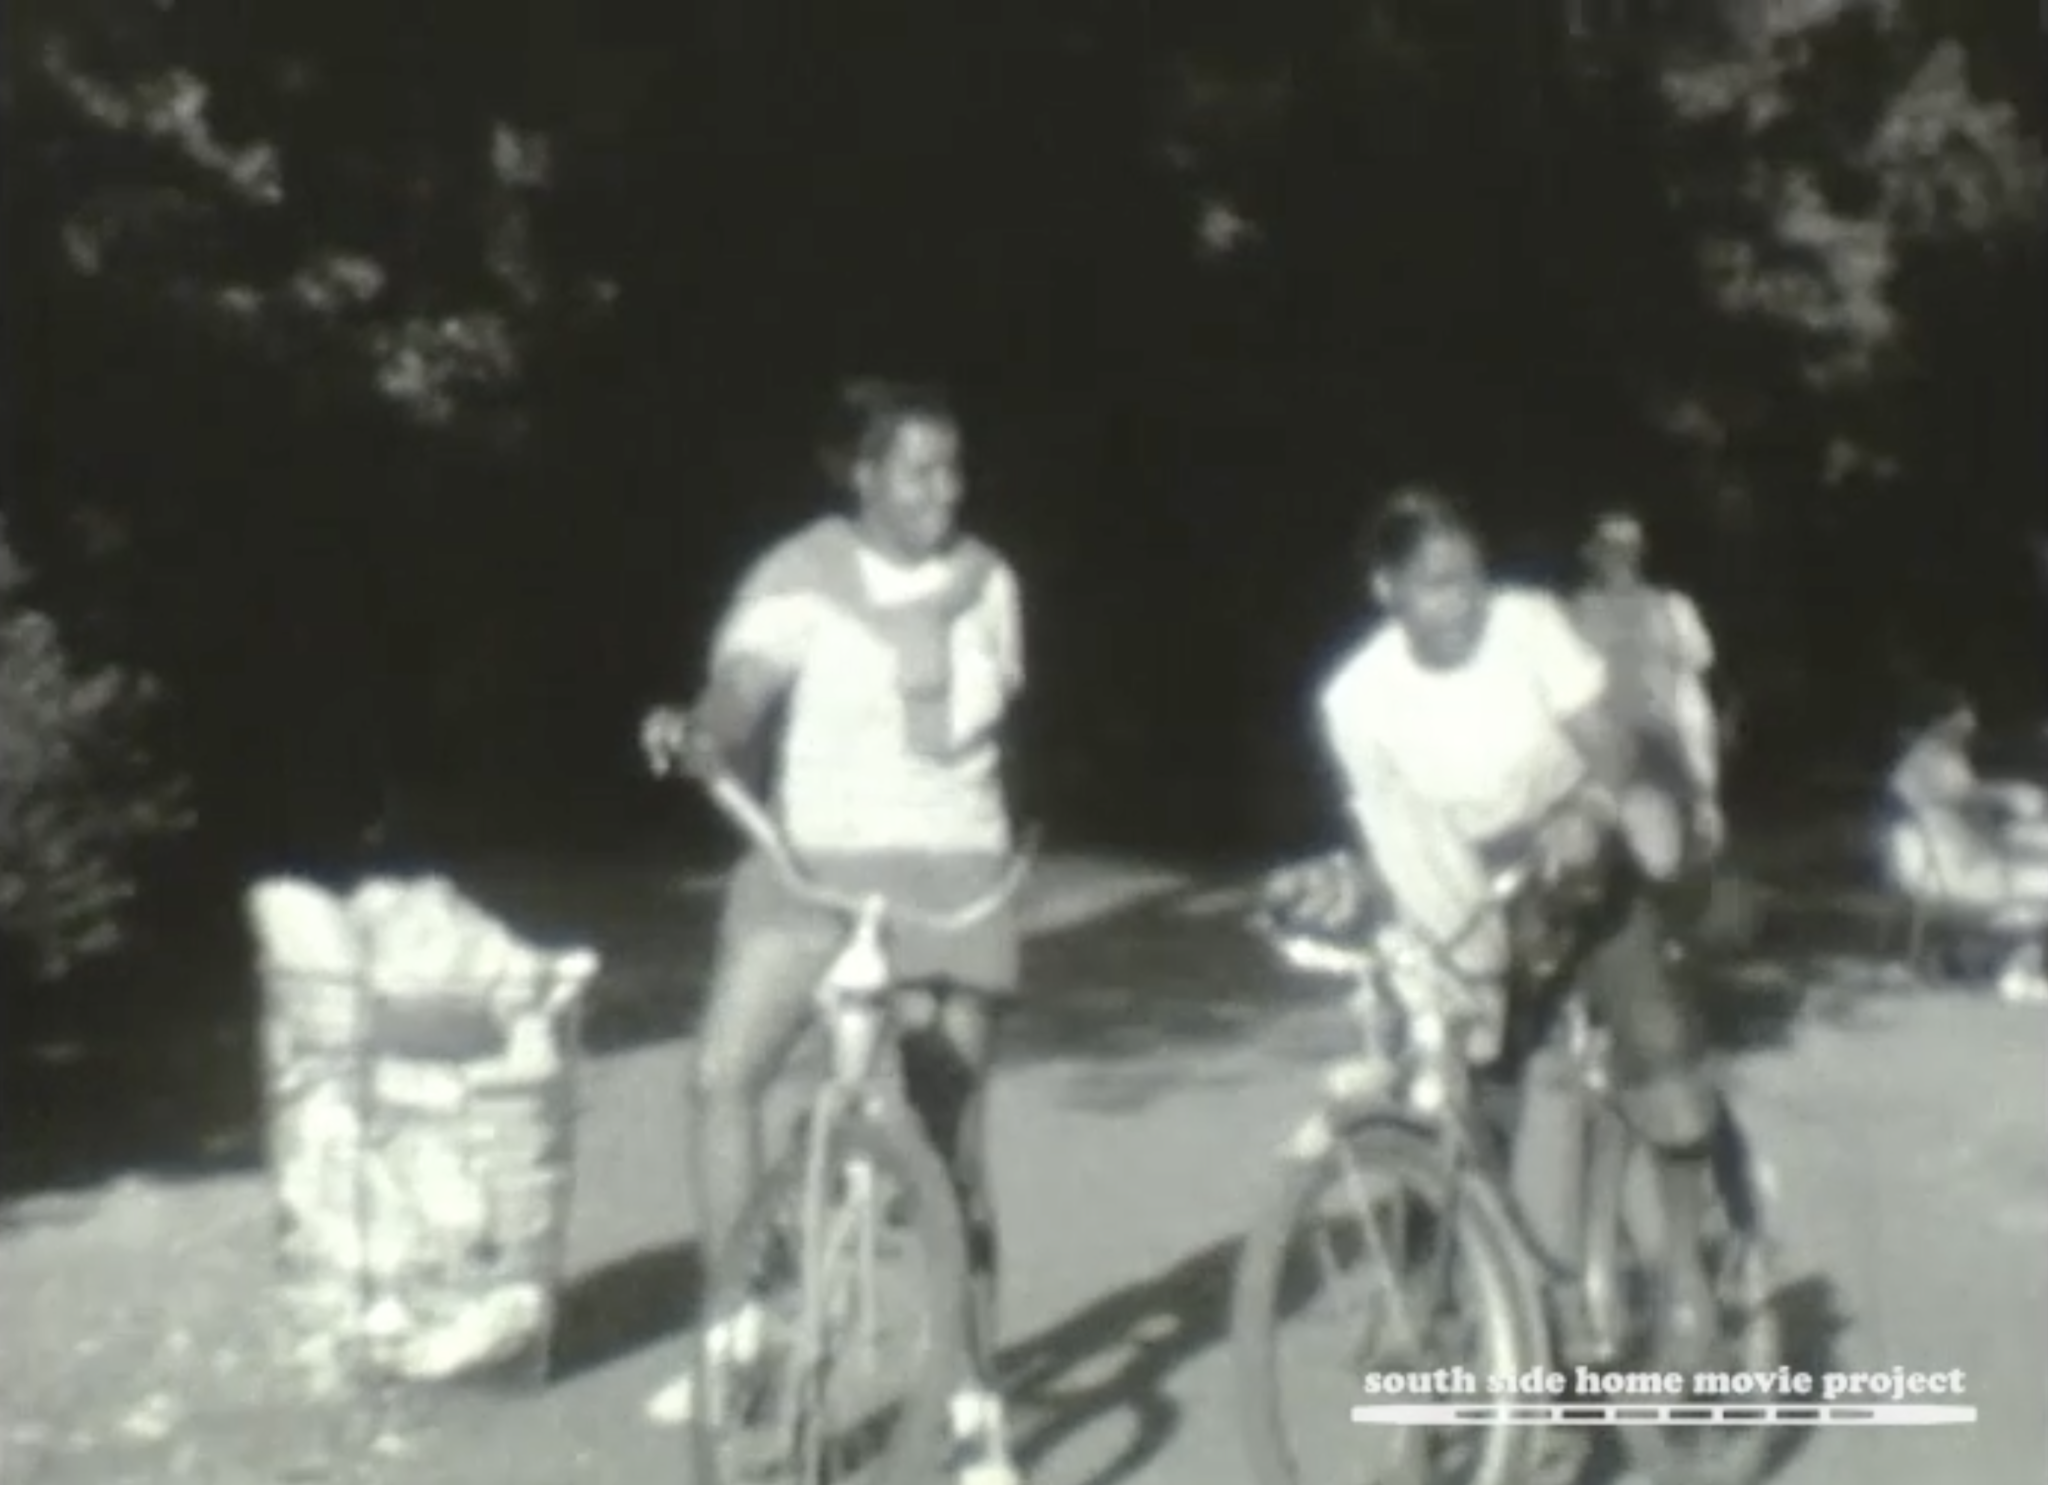 Still from the Ellis McClelland collection, courtesy of the South Side Home Movie Project. 1940s.